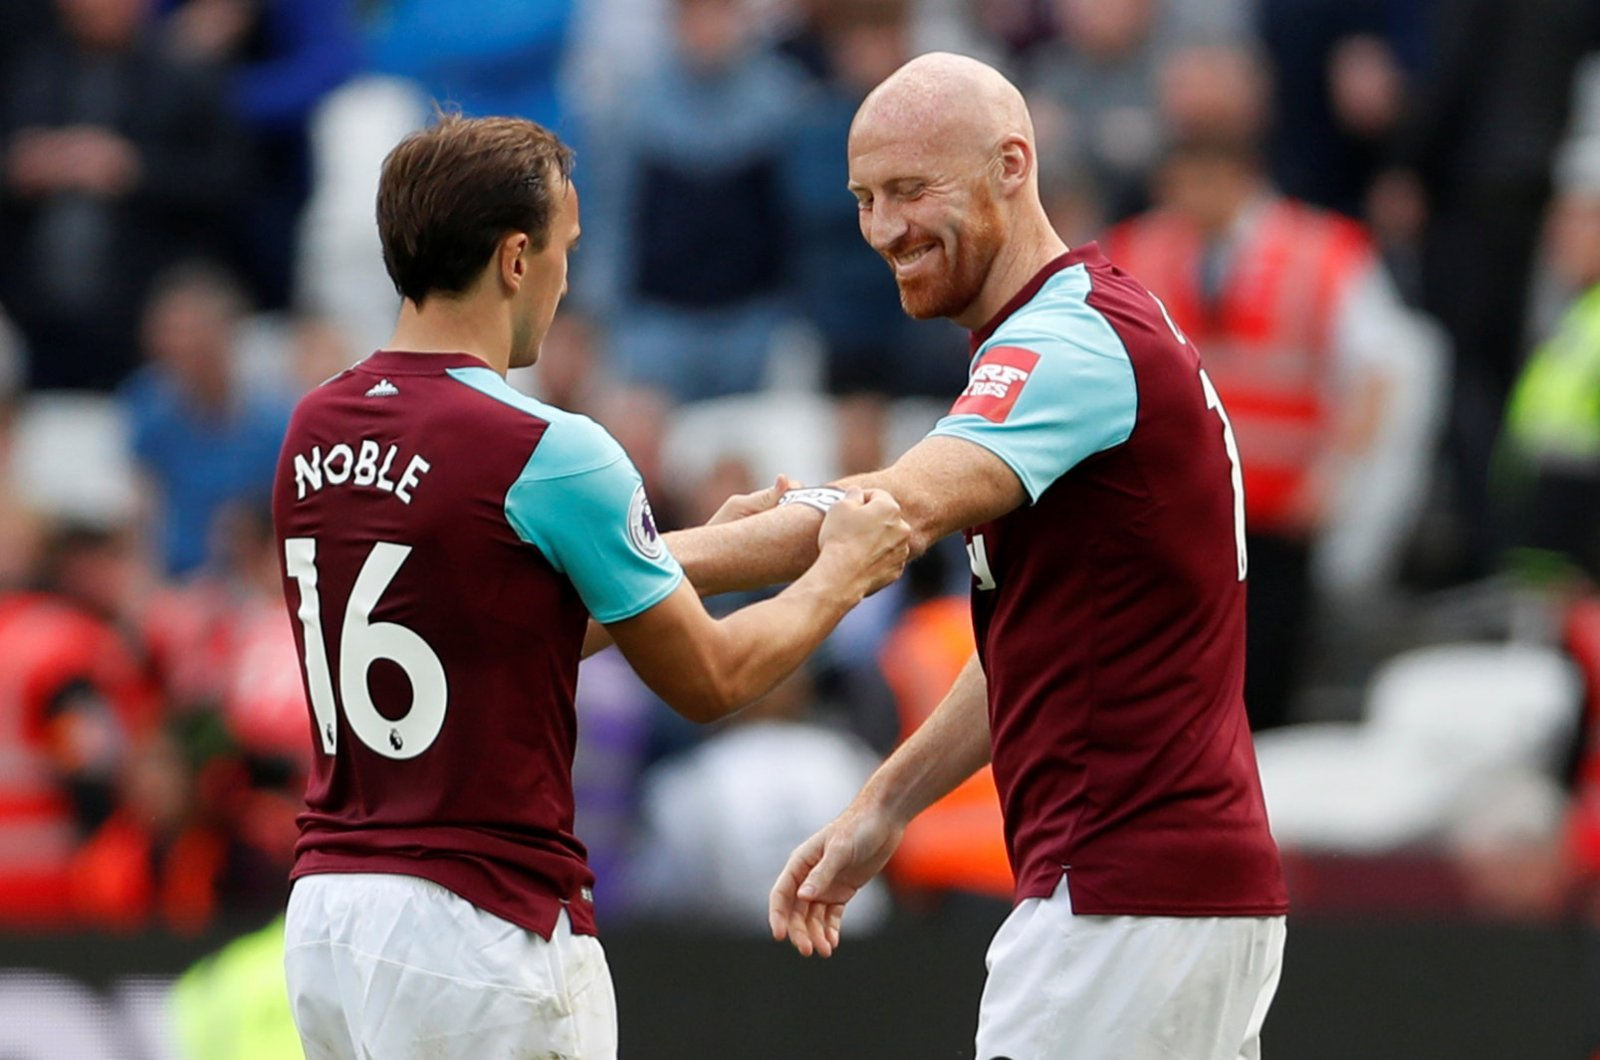 Leeds should offer James Collins a contract this summer